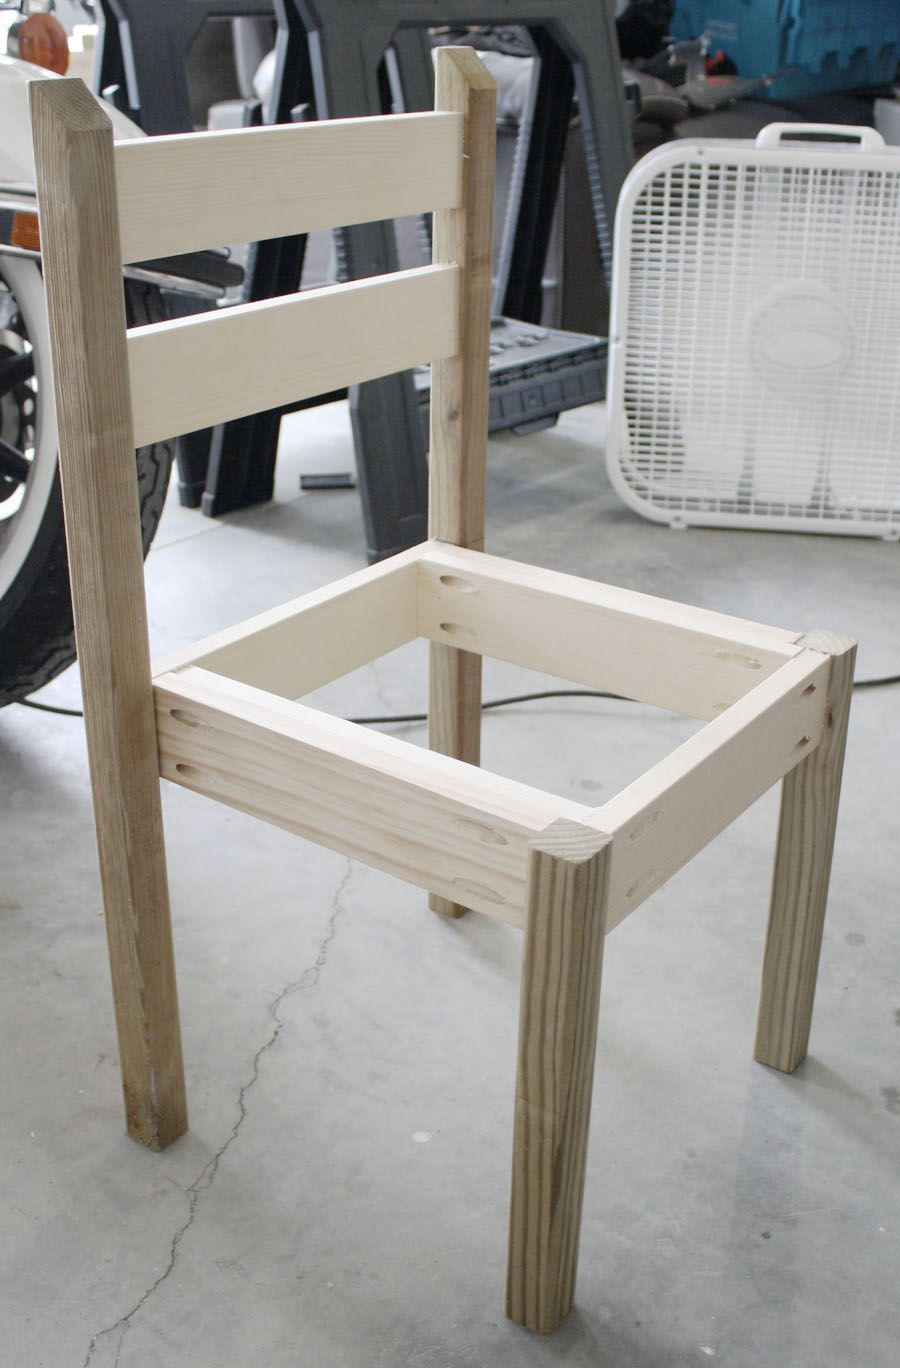 diy kitchen island fit for a chef wood scraps scrap and